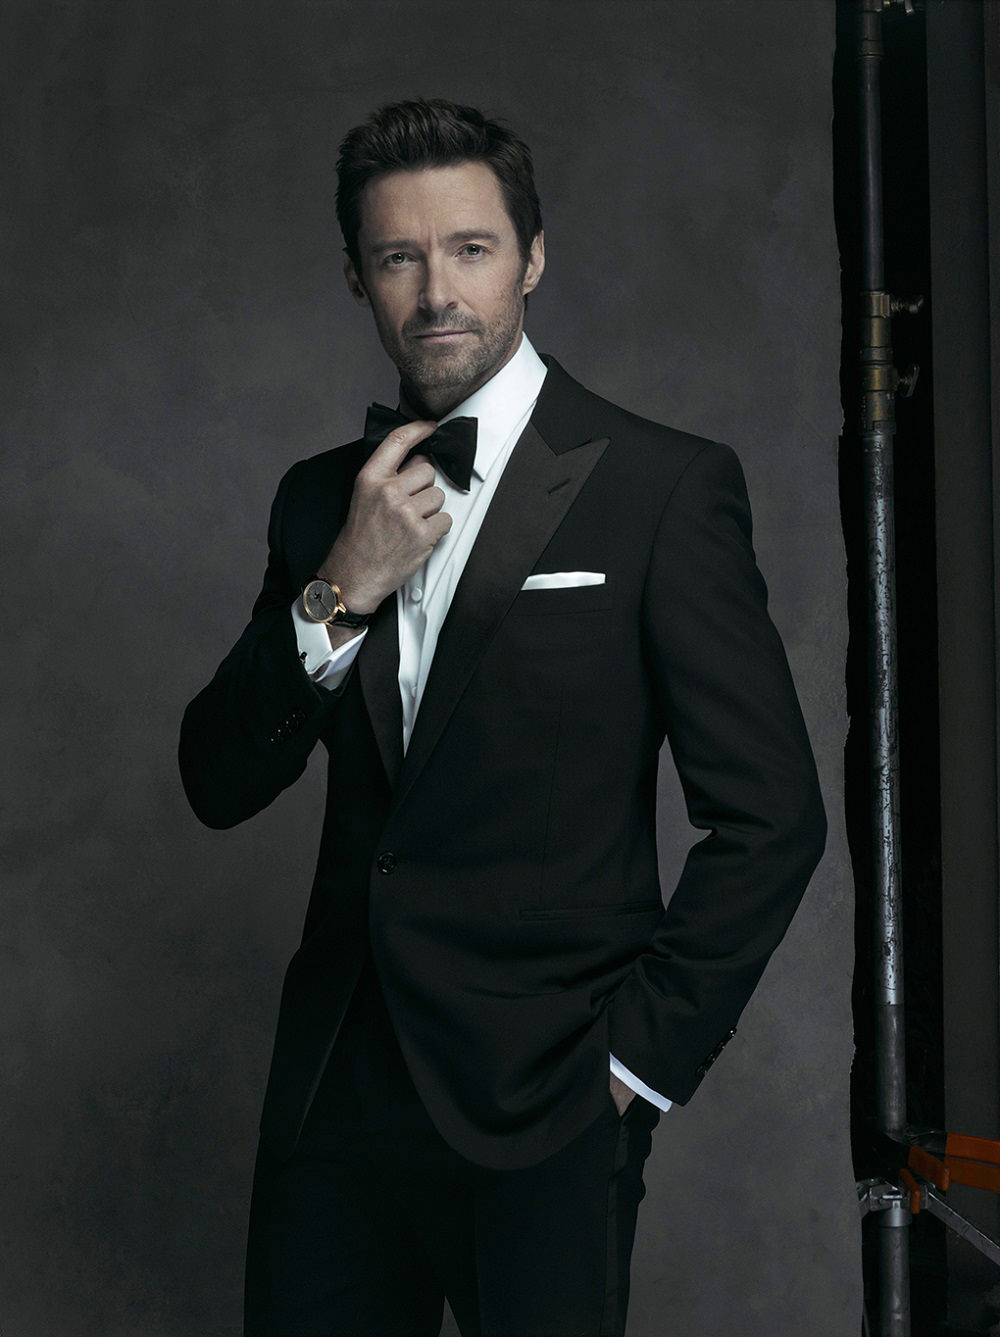 crafted-for-new-heights-hugh-jackman-stars-in-new-montblanc-international-campaign